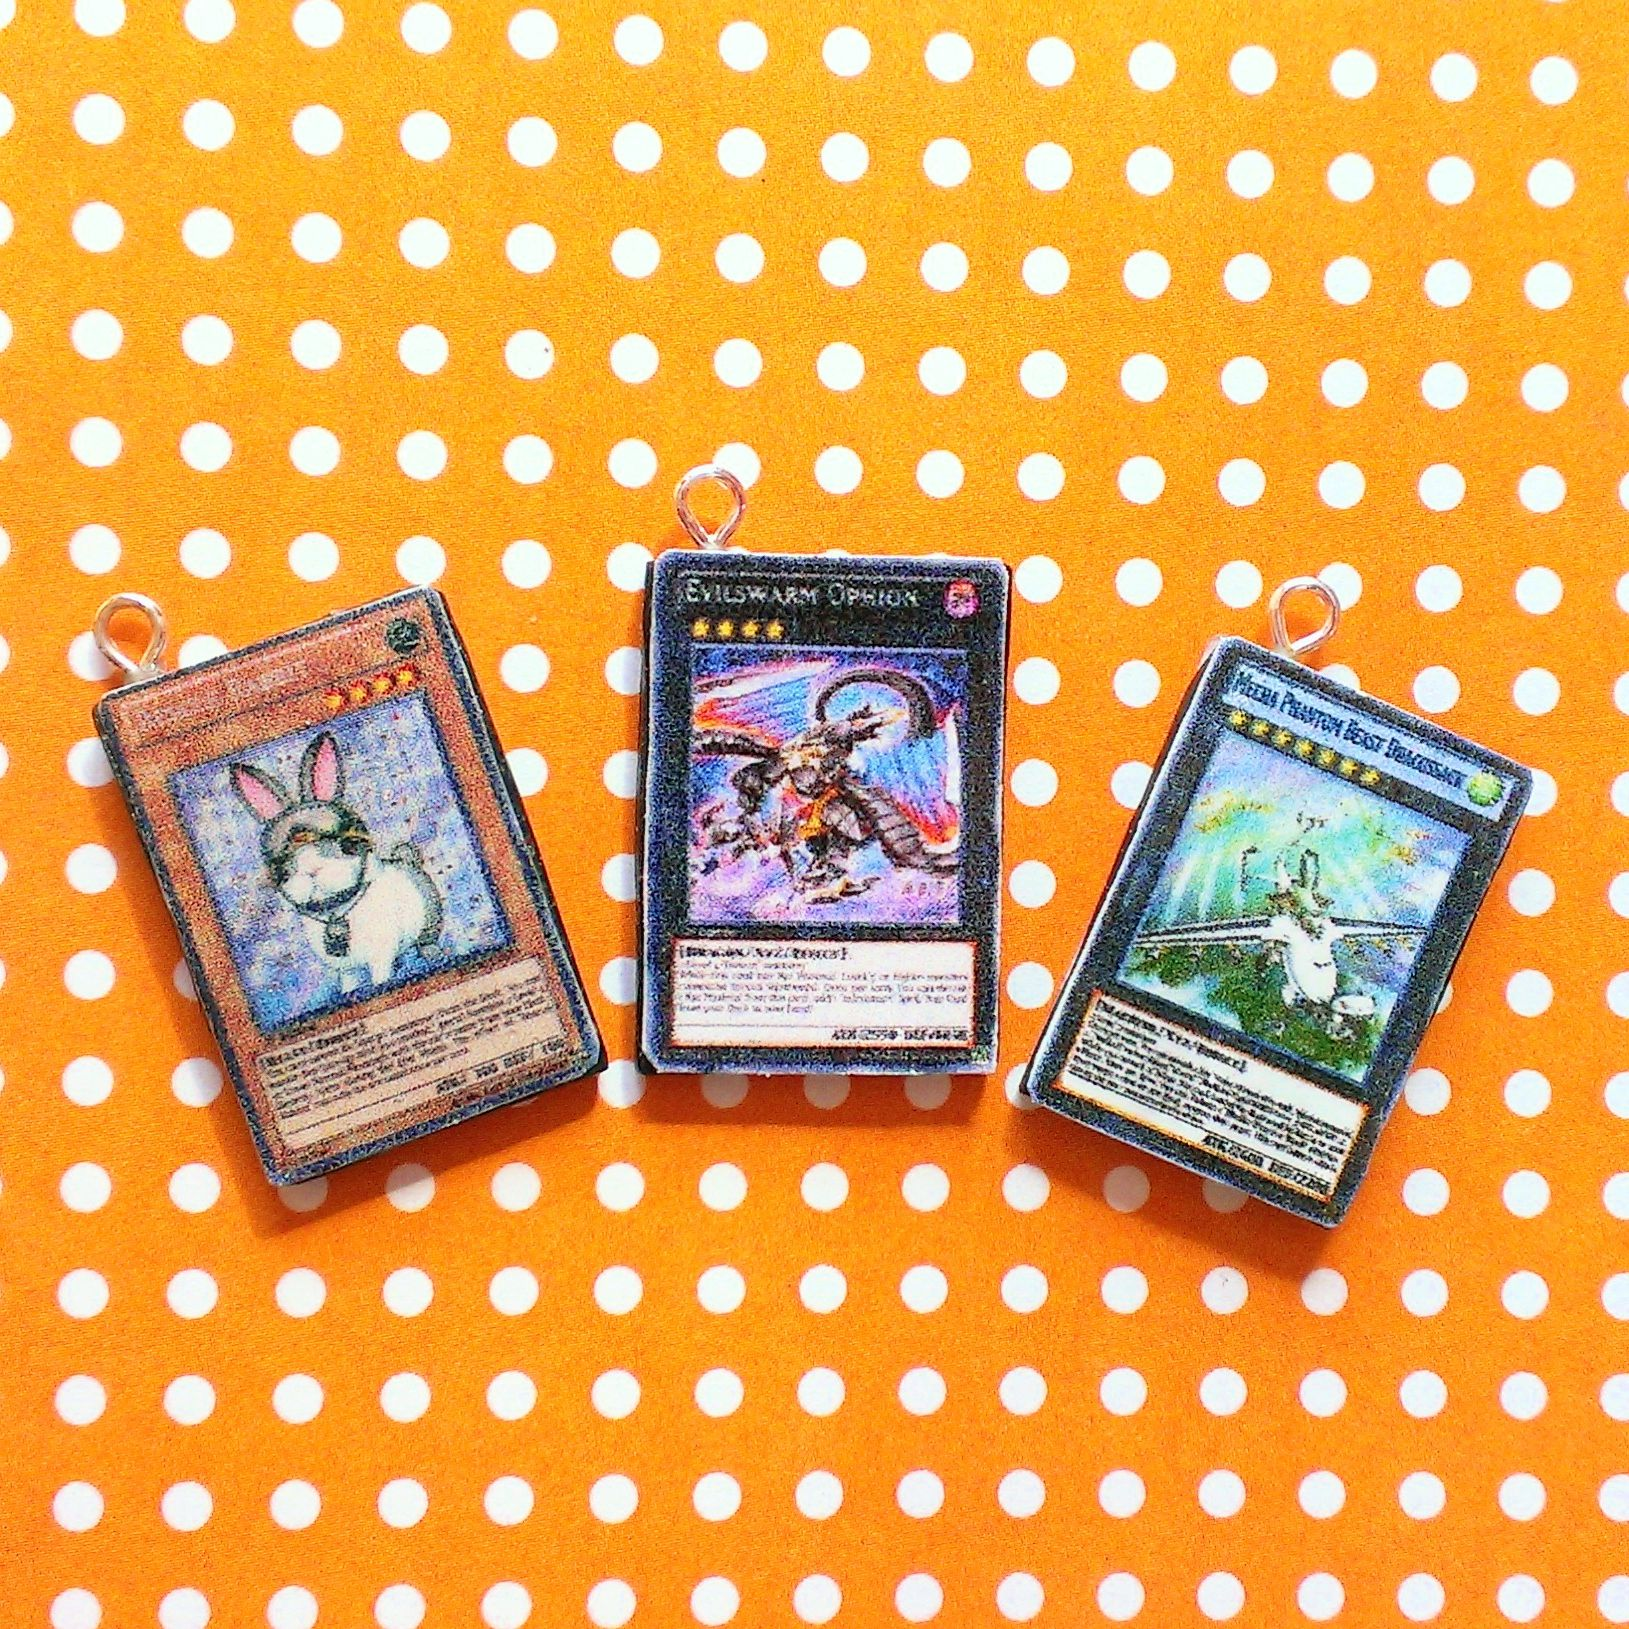 Description pick any yugioh card you want and you can